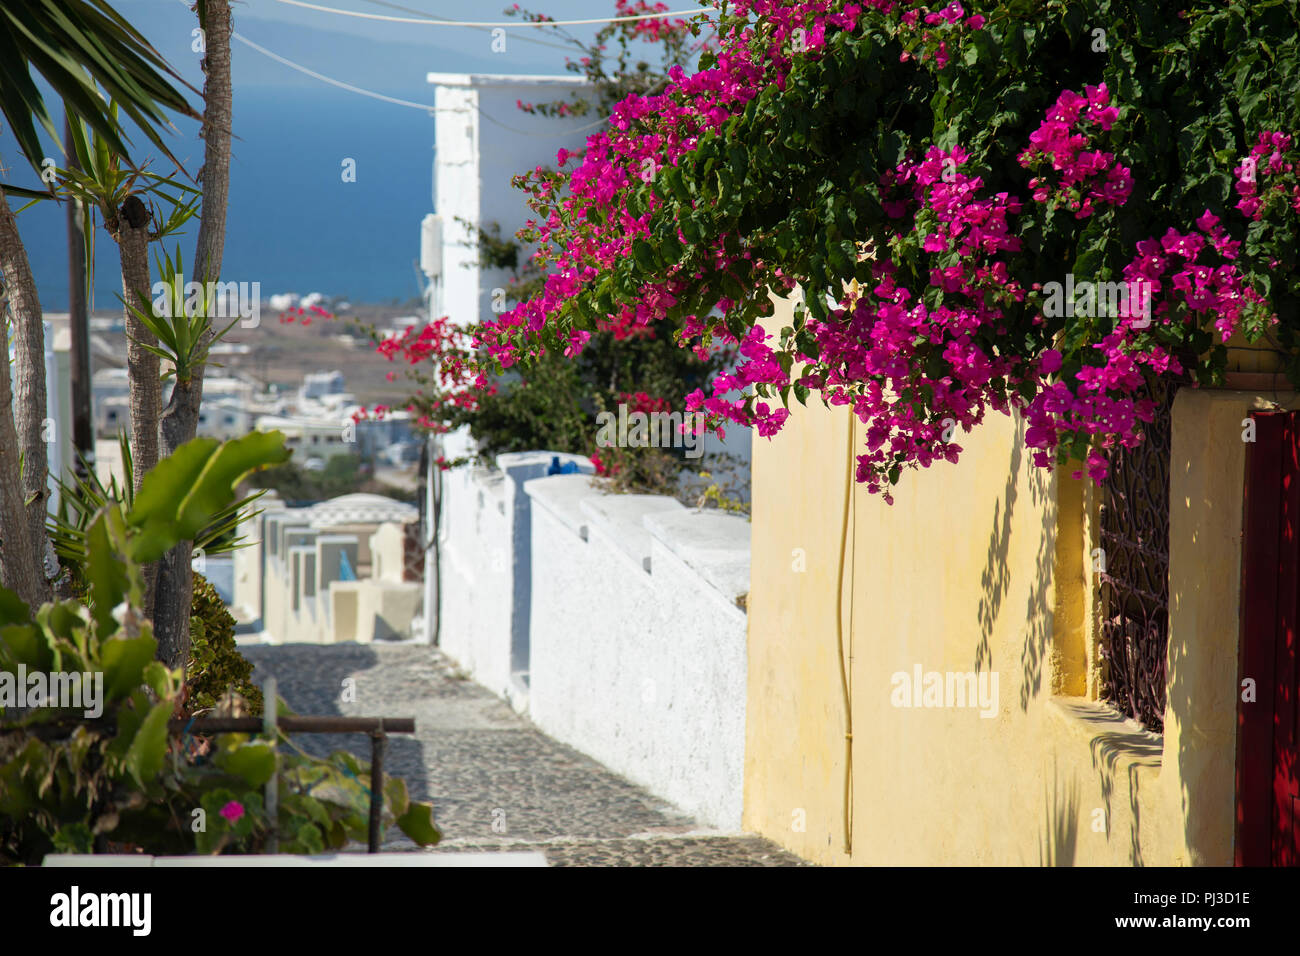 b6dd6ae18f2f pink bougainvillea flowers overlooking Oia